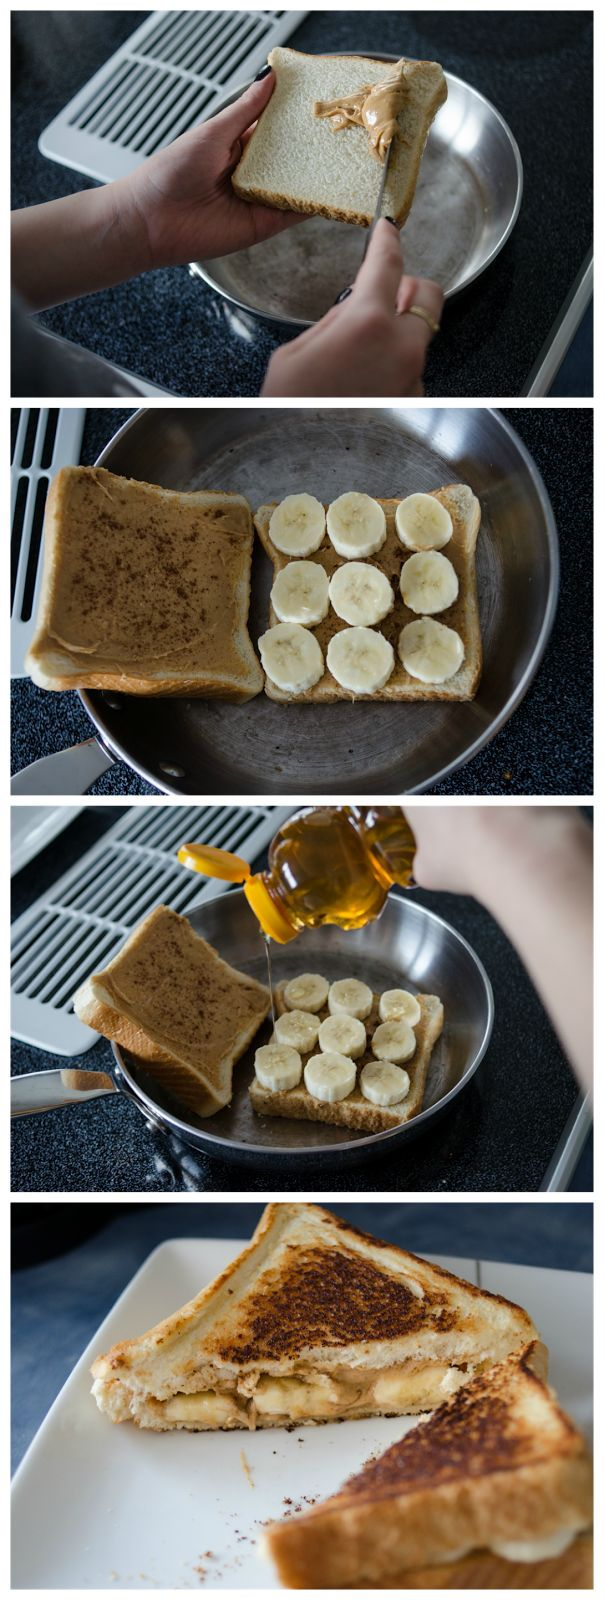 Peanut Butter and Banana Grilled Sandwich (you may add some Marshmallow Fluff to this; outstanding)